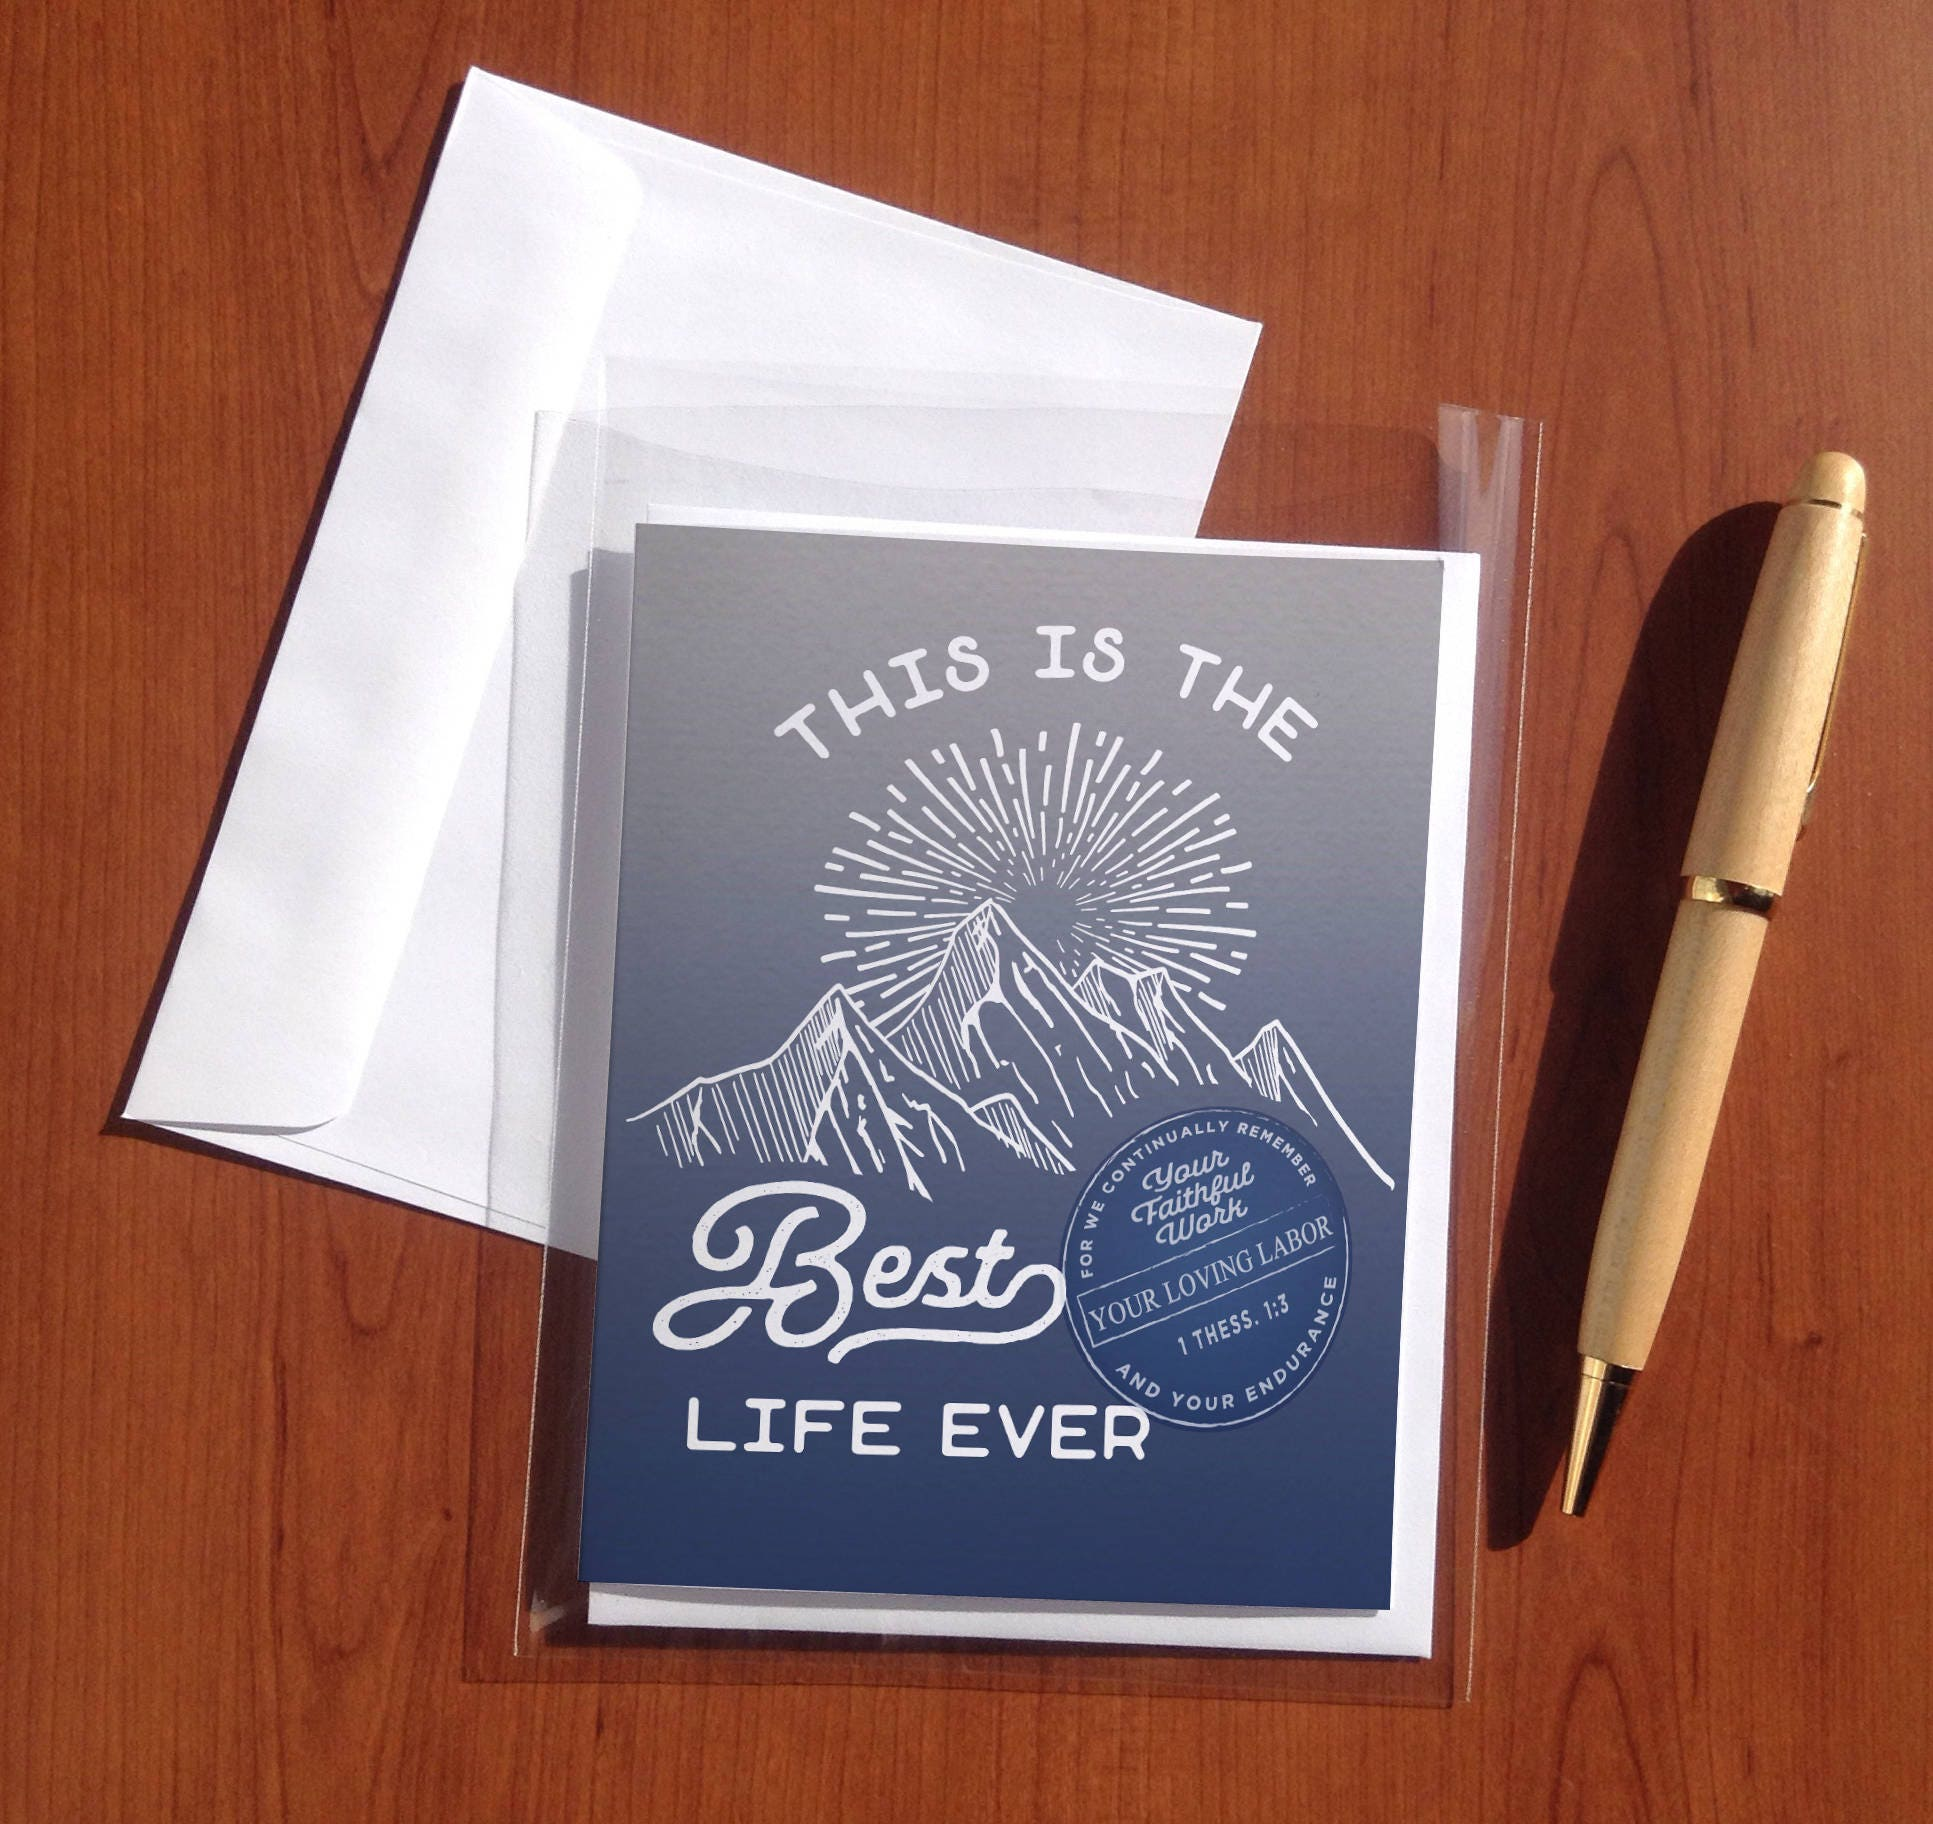 Best life preaching work jw greeting cards